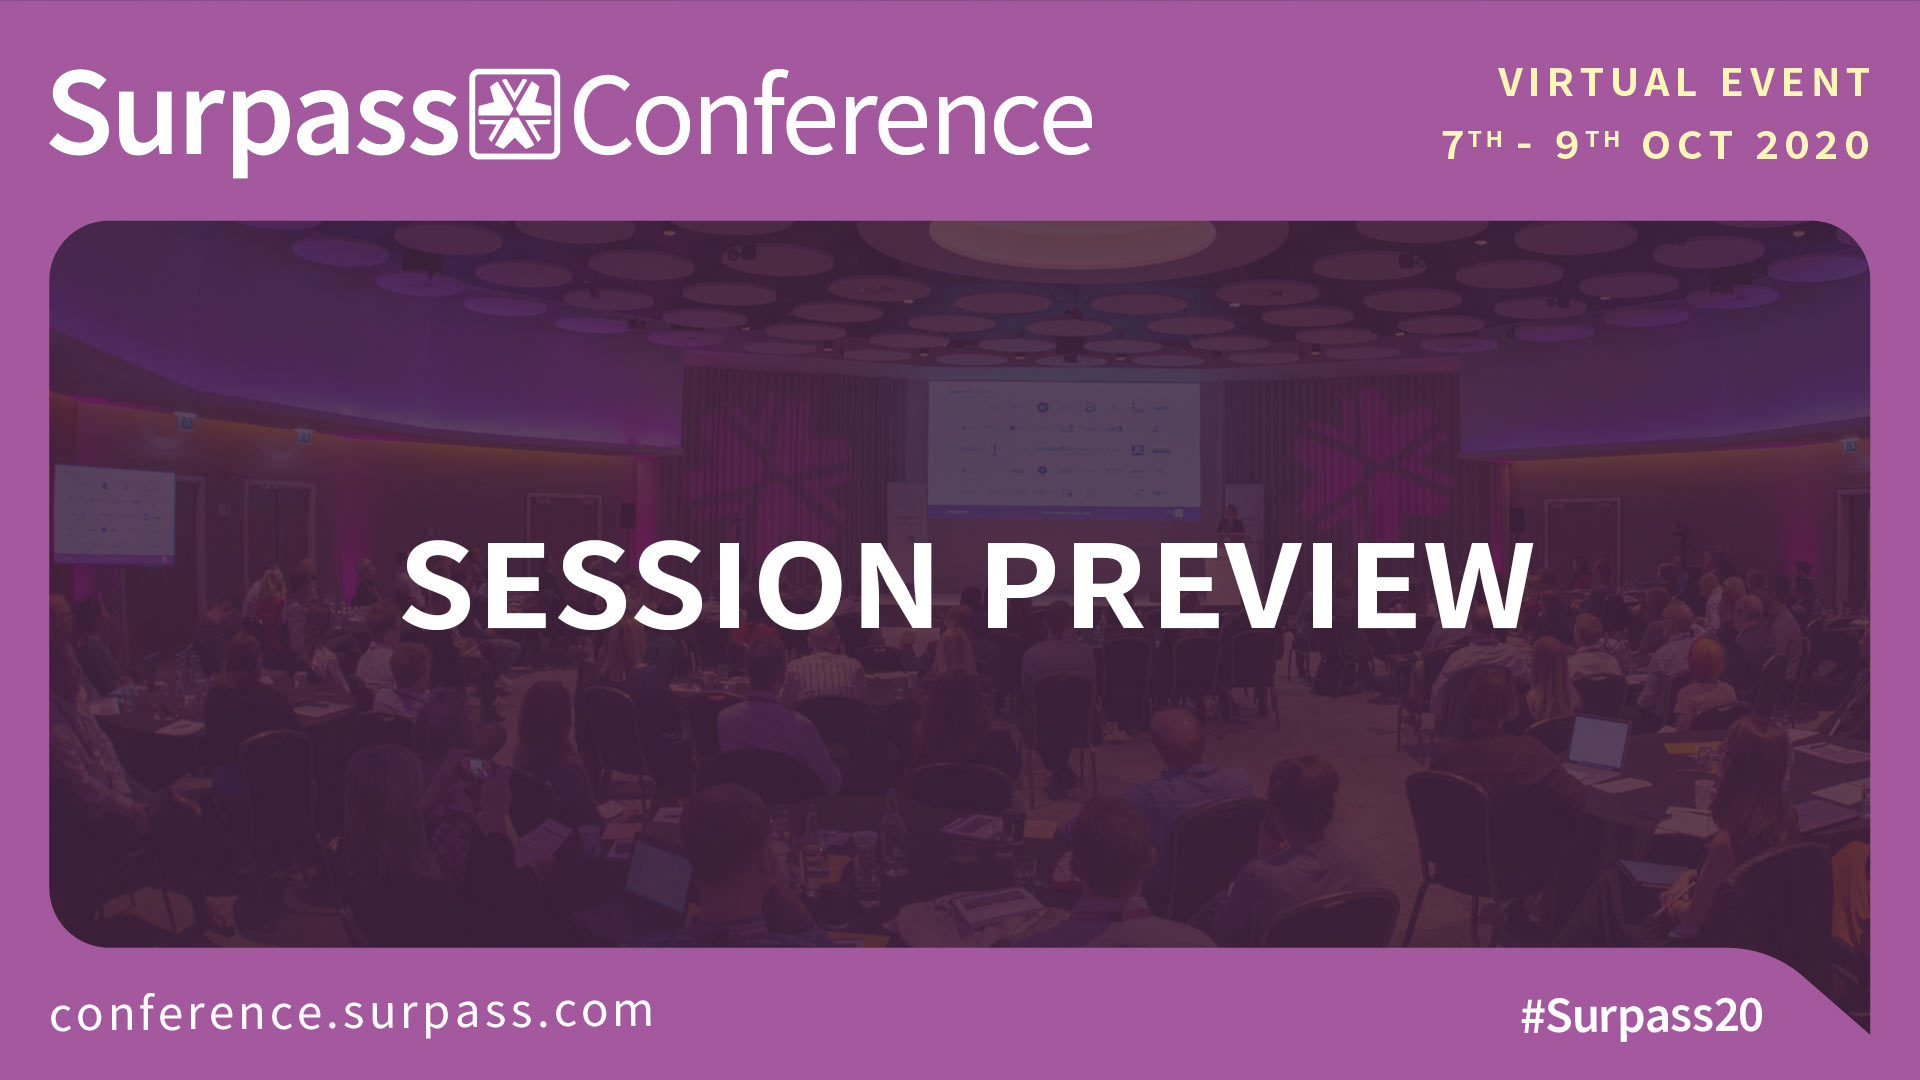 Surpass Conference 2020 Session Preview